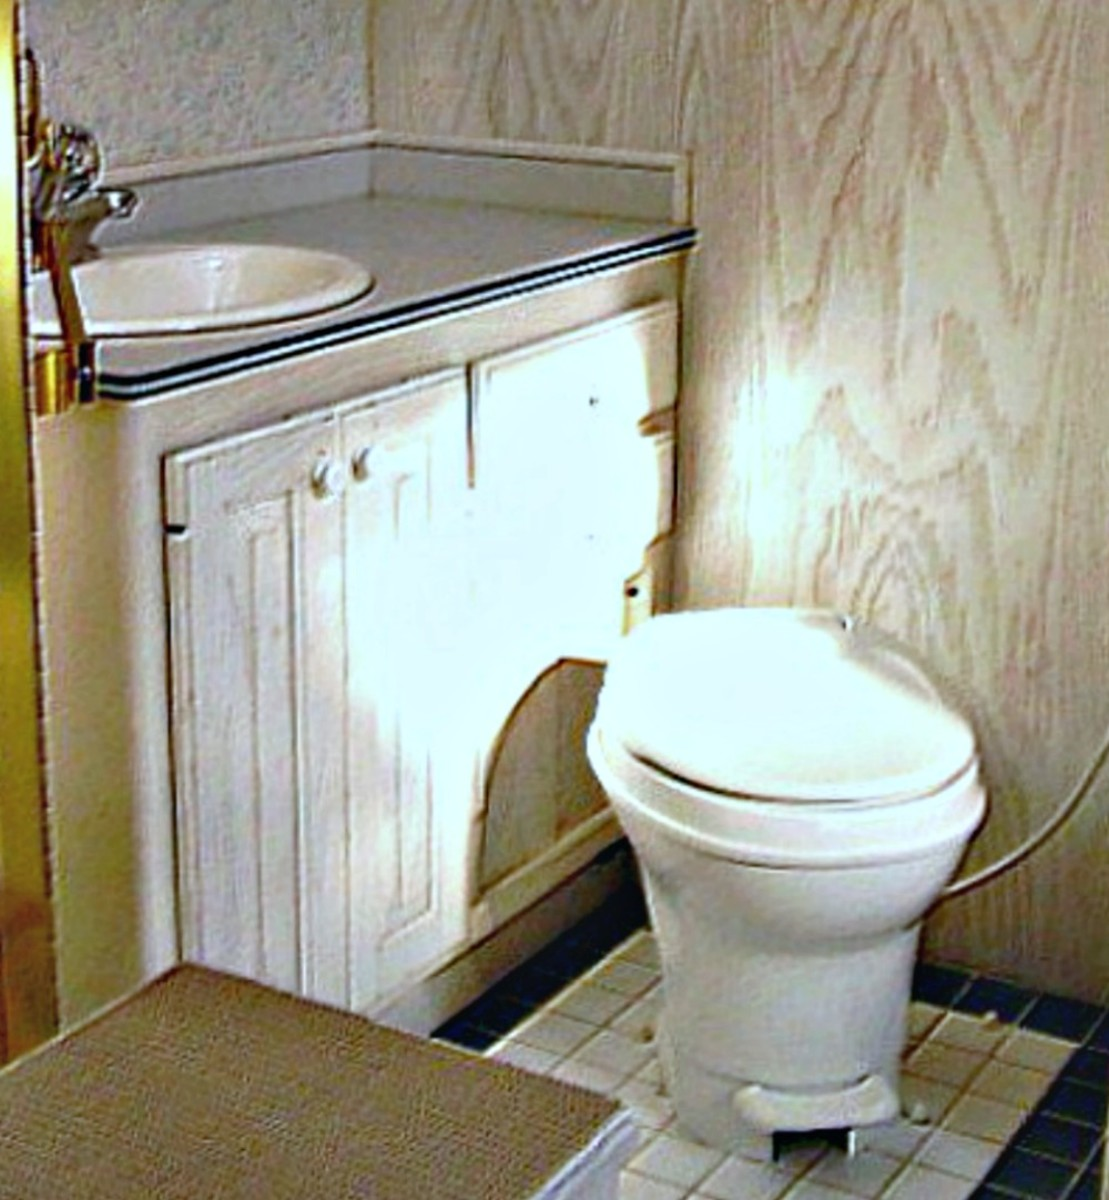 Eliminate bathroom smells now.